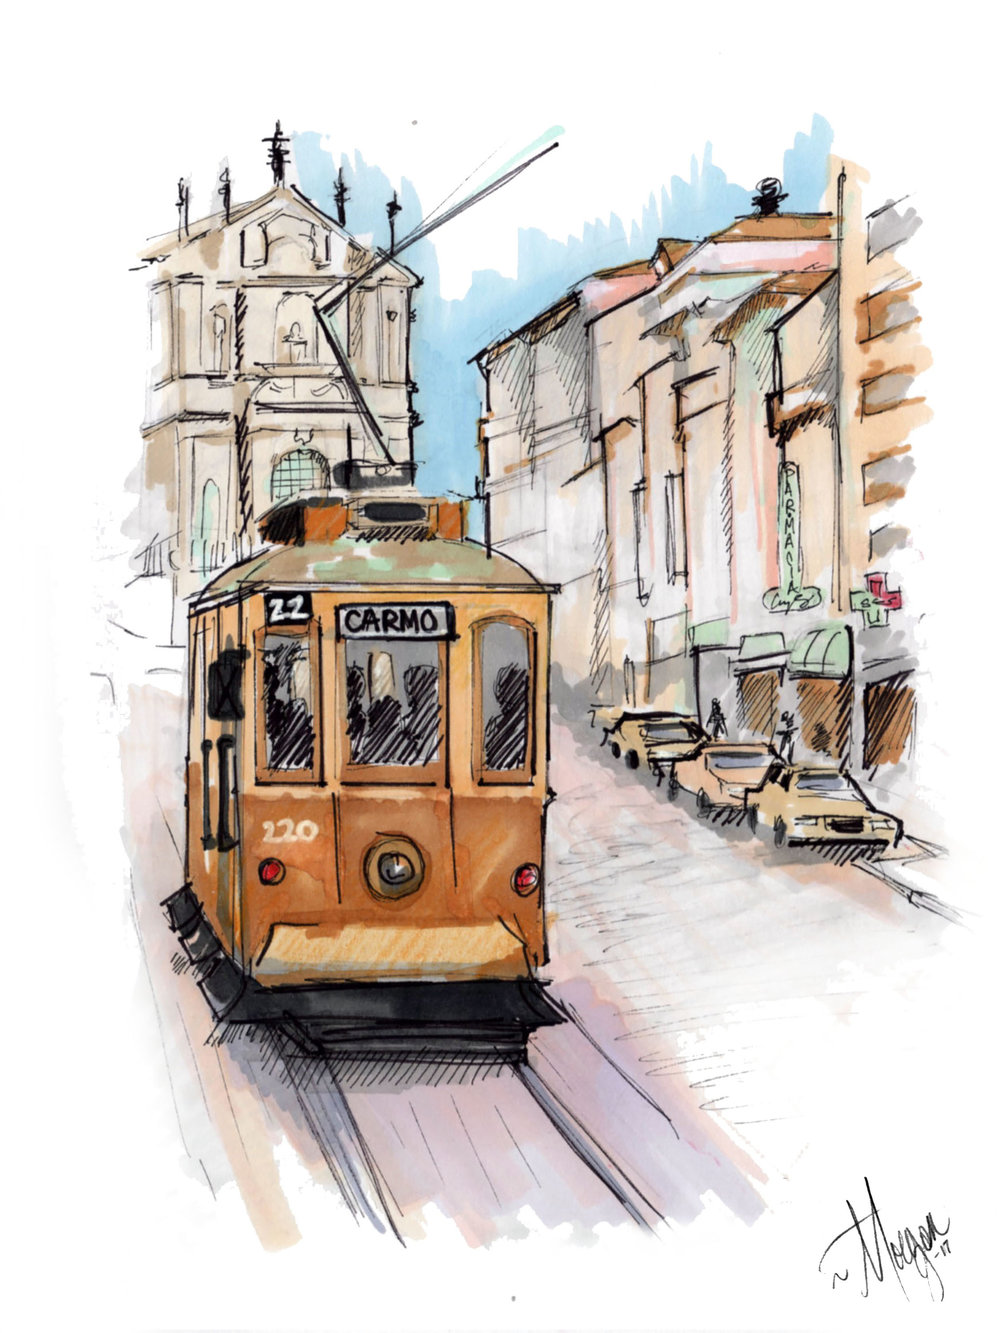 lisbon-illustration-morgan-swank-studio.jpg